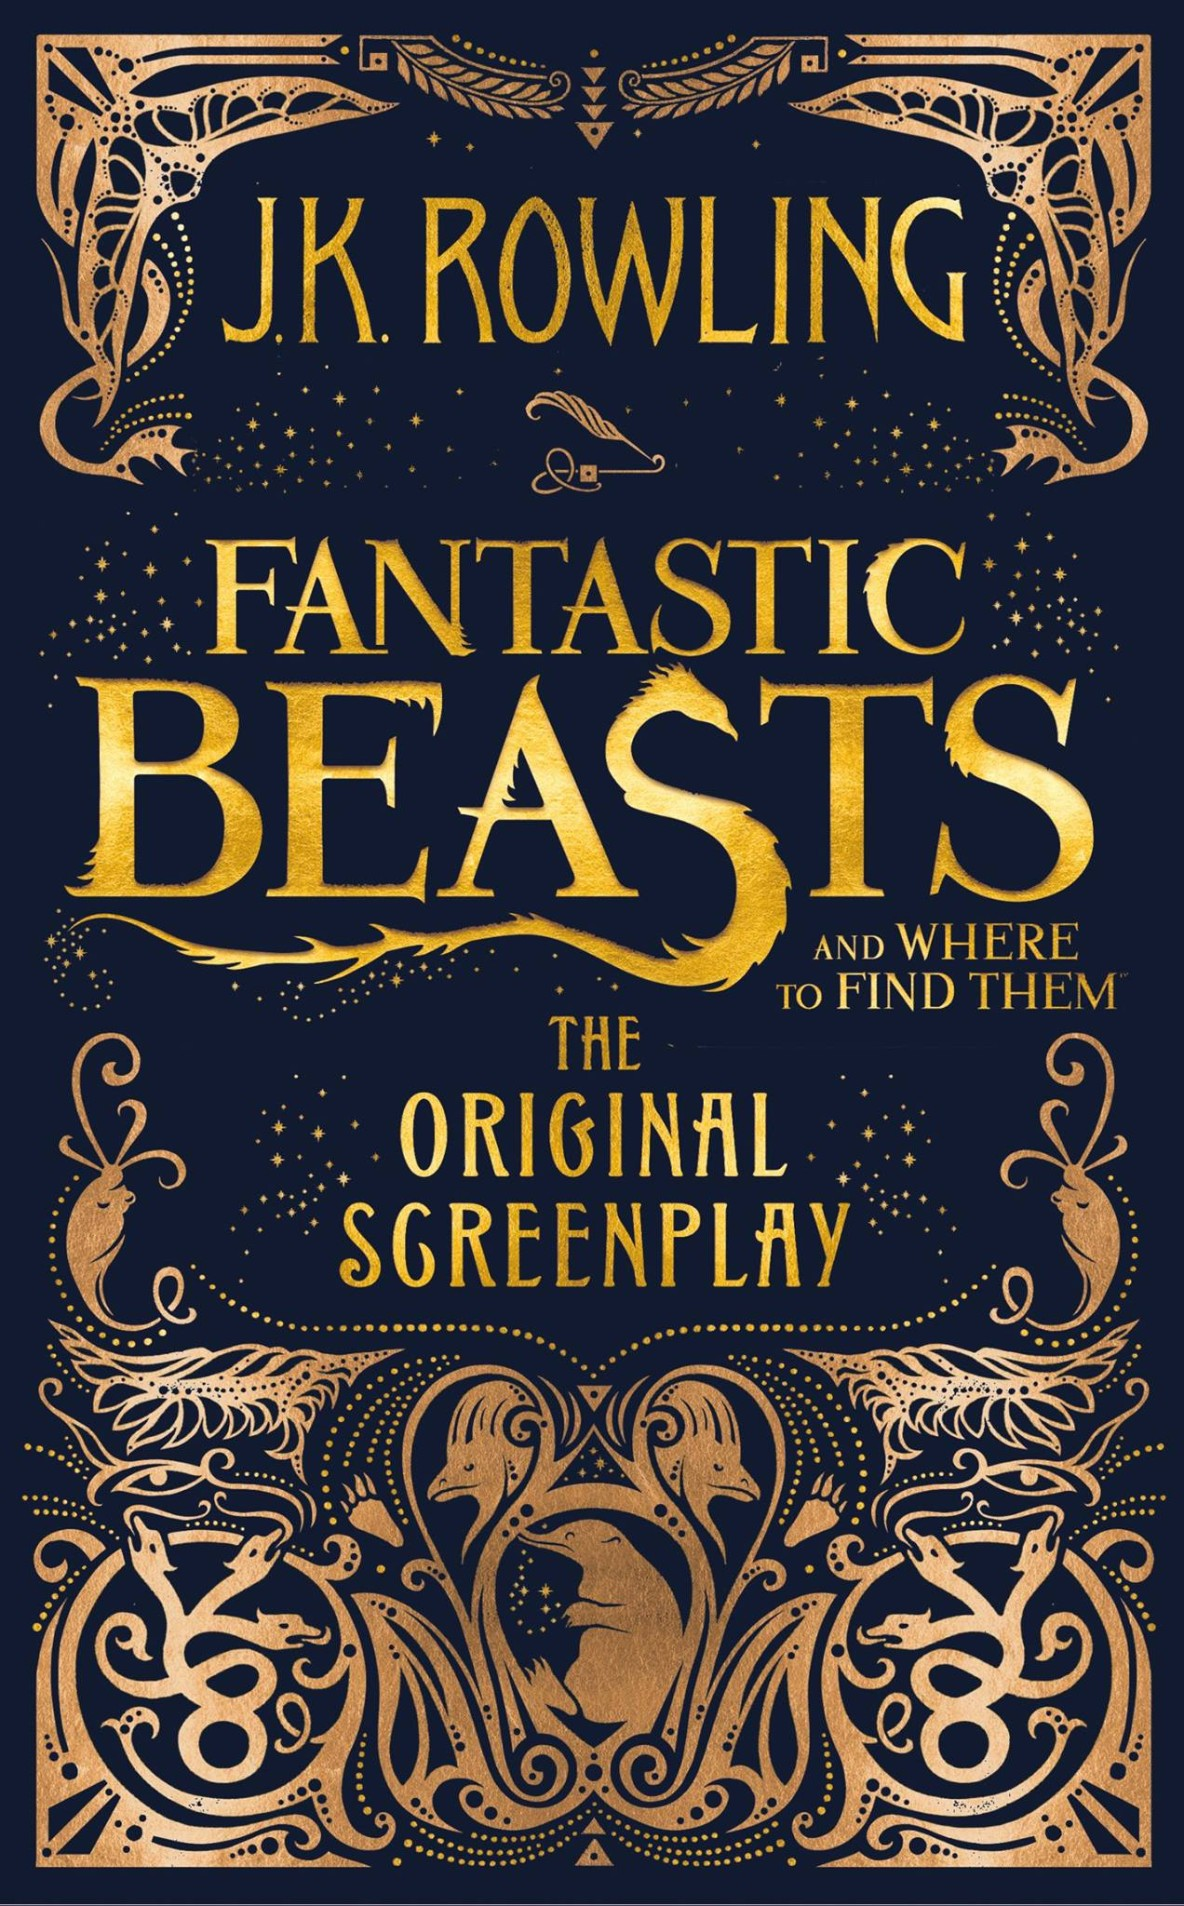 fantastic-beasts-script-book-cover-galleycat-1184x1906